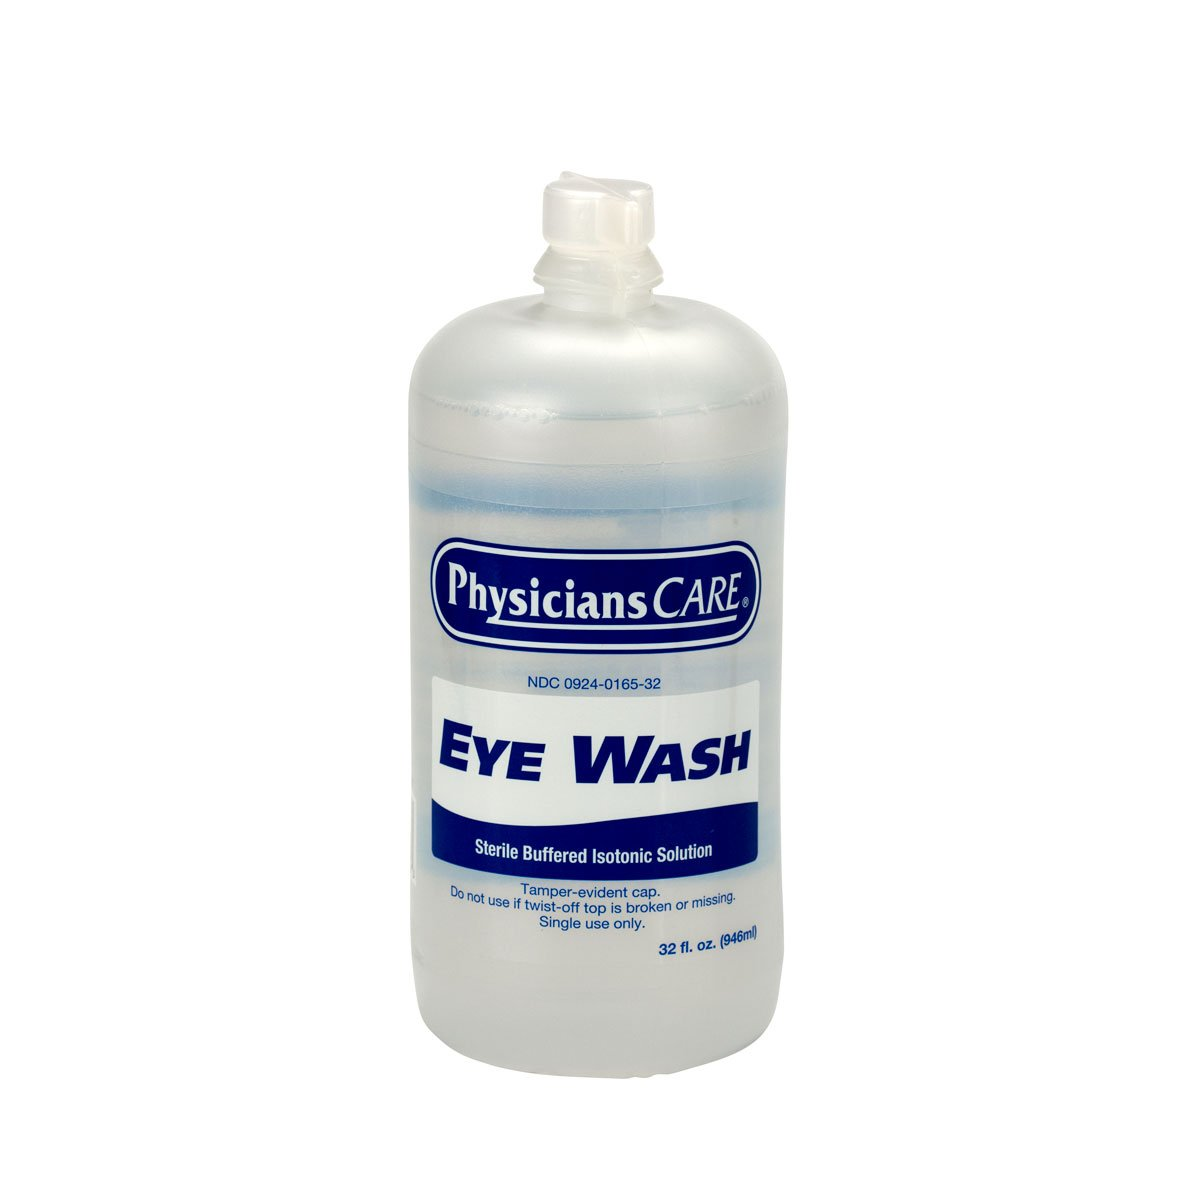 PhysiciansCare by First Aid Only 500-90547 Eyewash Bottle, 32 oz. (Pack of 12)